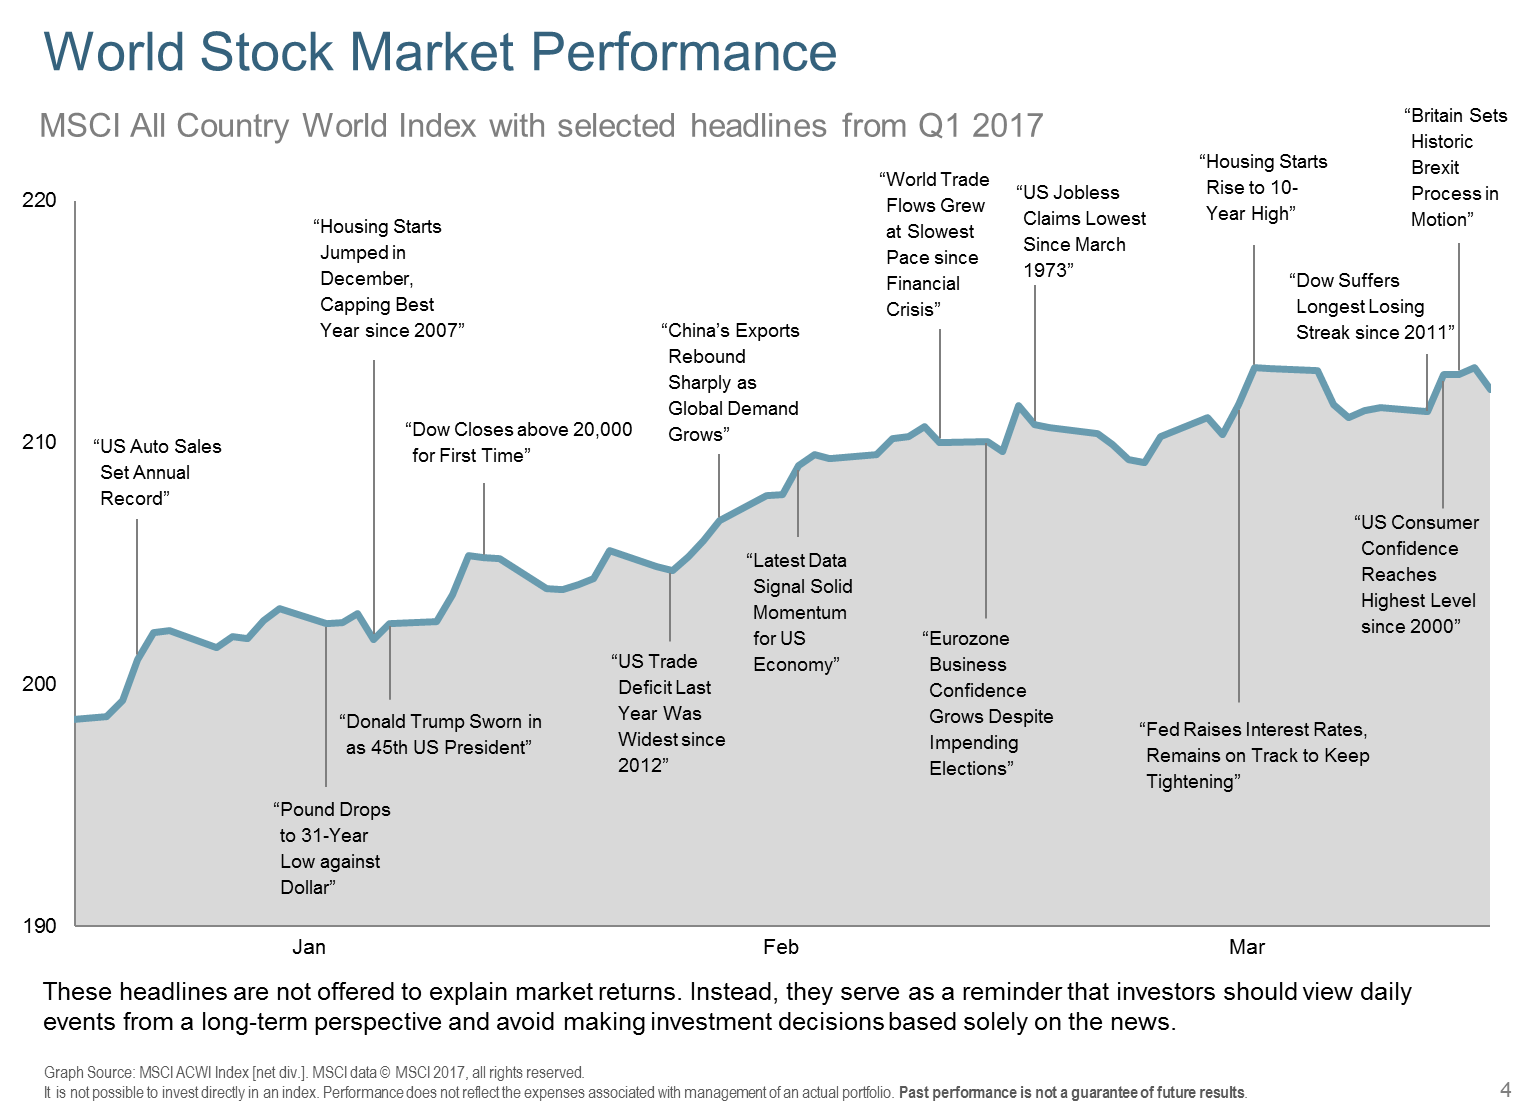 DFA 1Q17-World Stk Mkt Perf & headlines